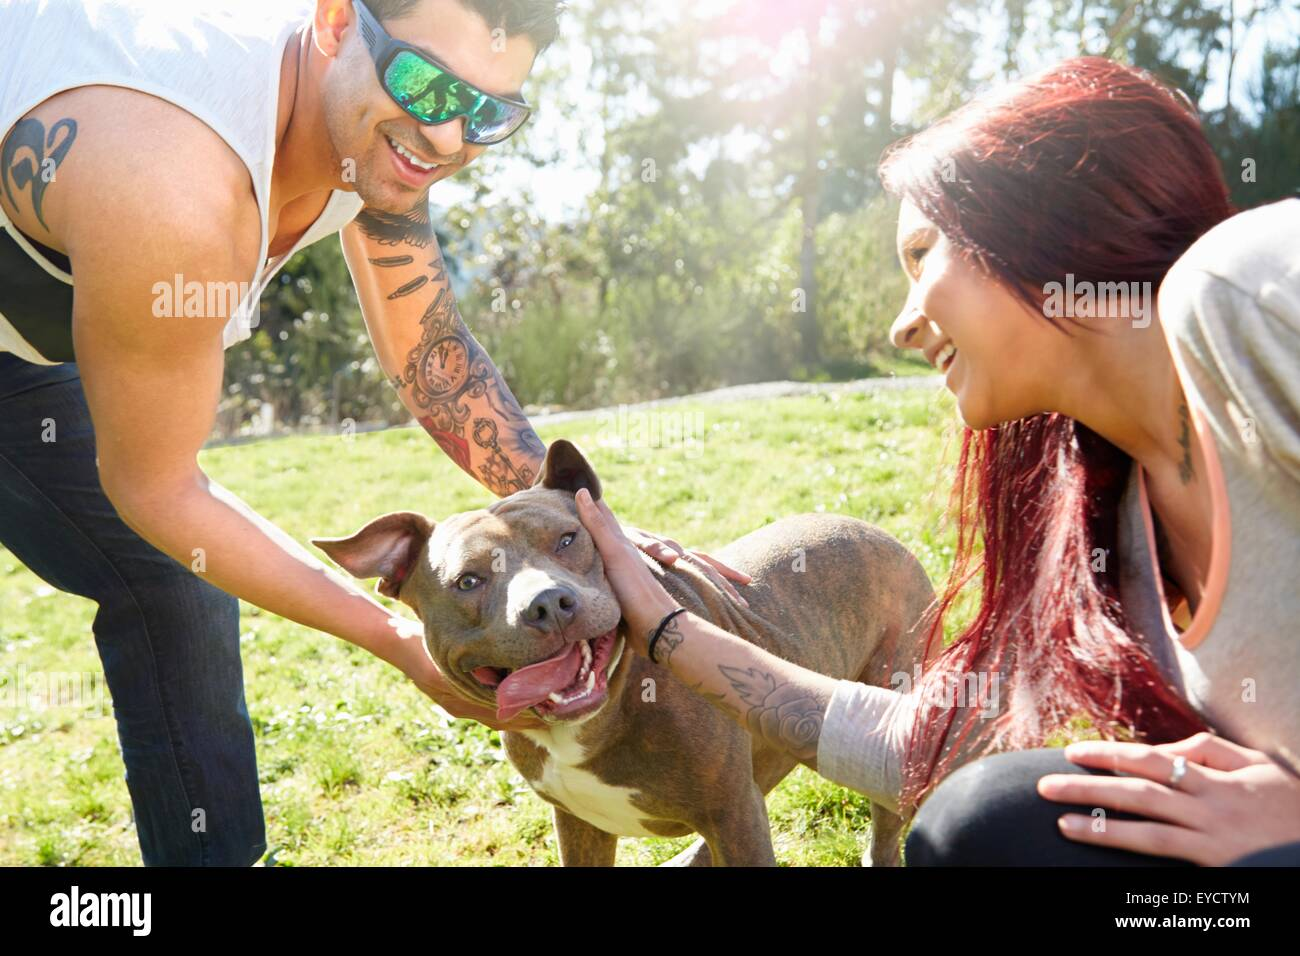 Young couple petting dog in park - Stock Image